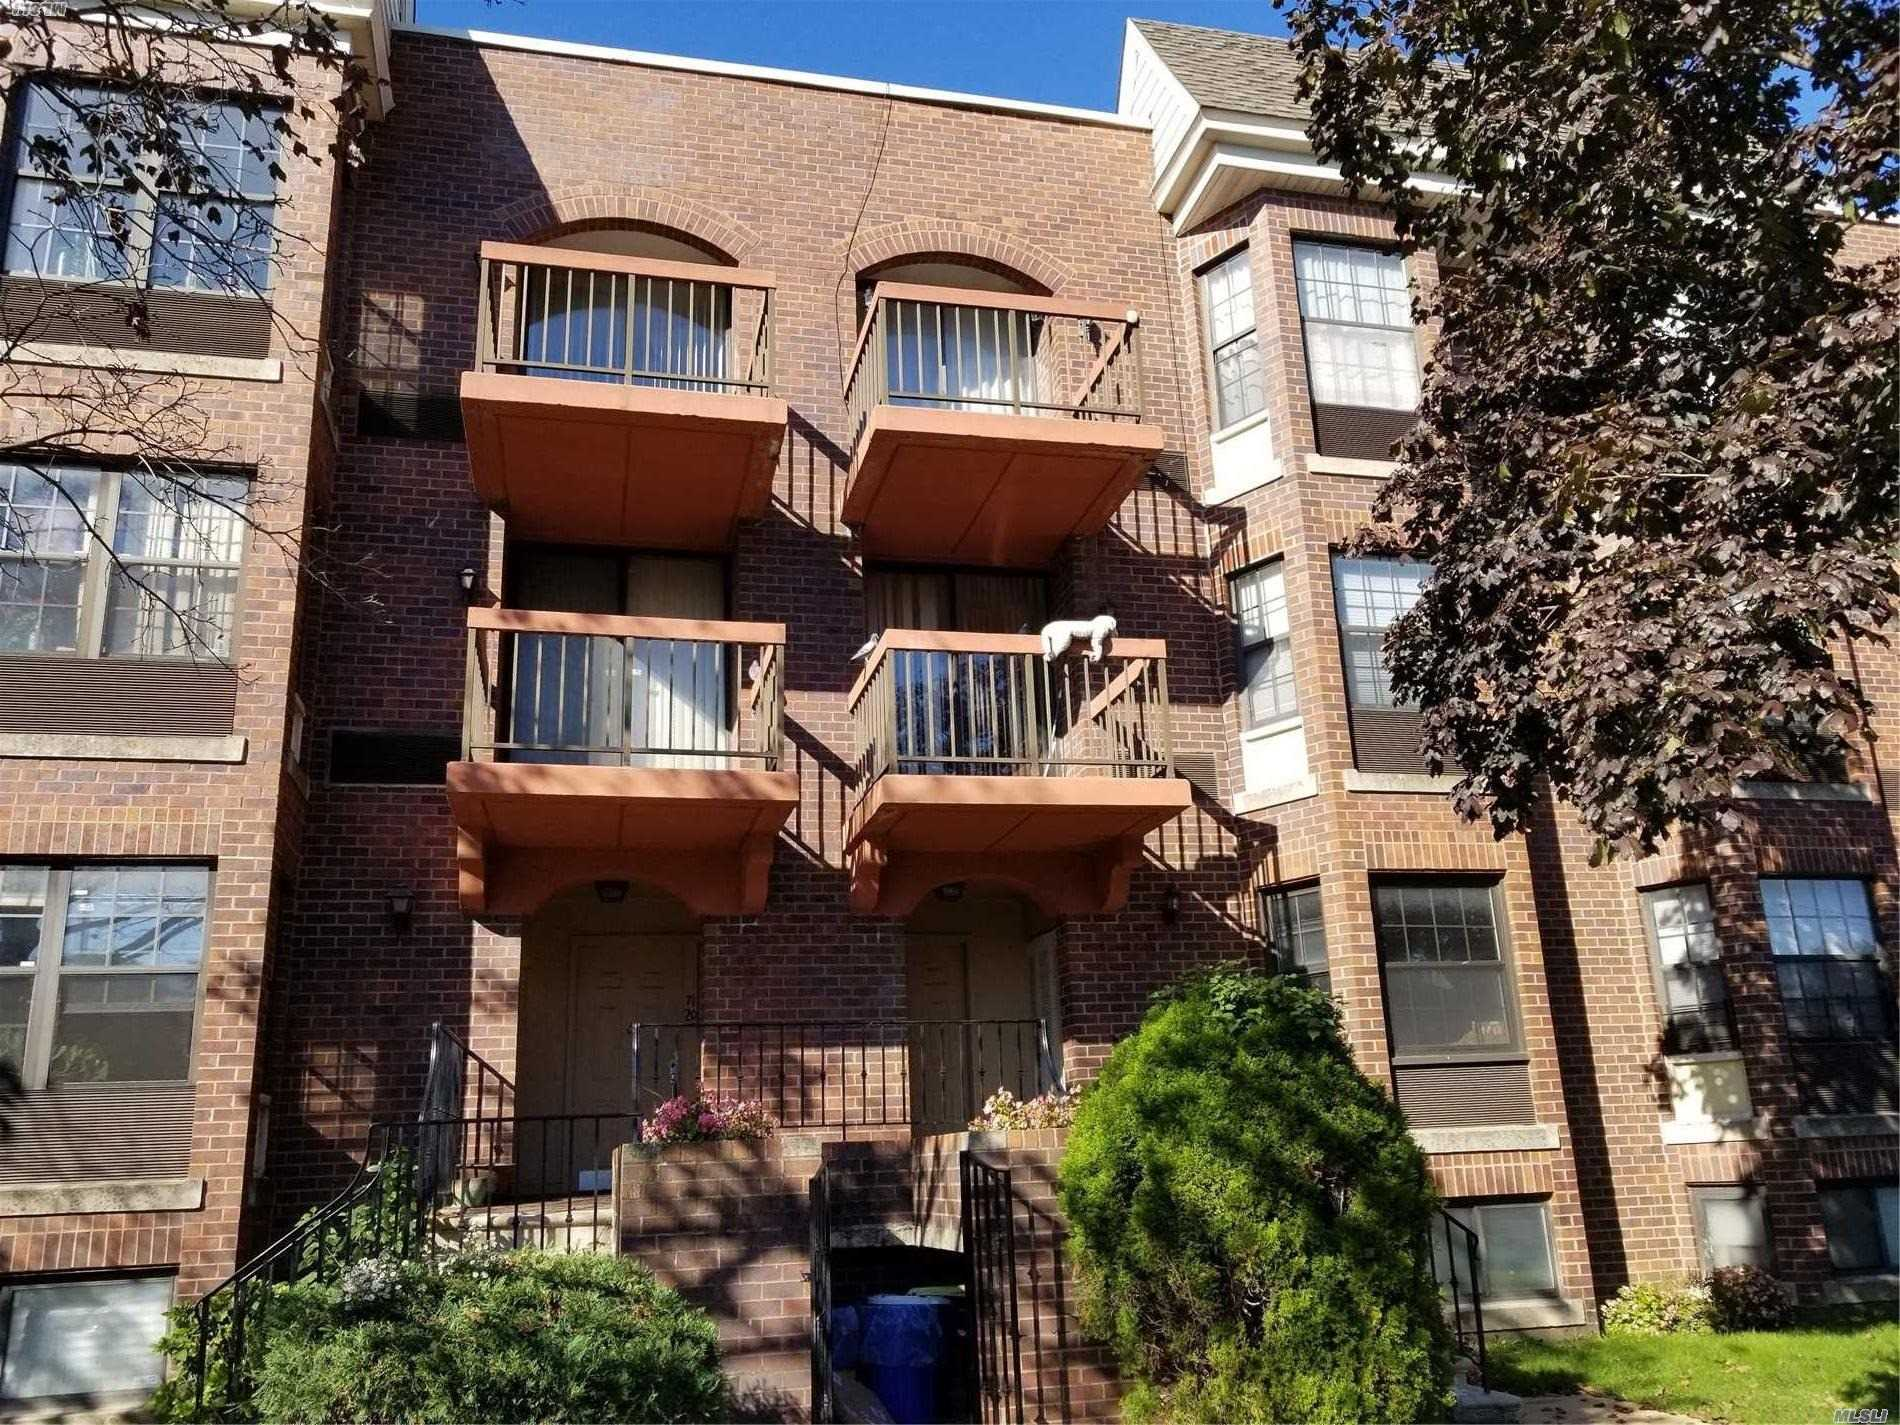 CALLING ALL INVESTORS!!! This is a unique investment opportunity with HIGH INCOME, LOW MAINTENANCE, LOW TAXES!!! Mixed-use condo property for sale. First floor features Open Floor Plan with Living Room, Dining Room, Kitchen, the master suite has 2 large closets, another bedroom and full bath. Washer and Dryer in unit. The lower level is appromimately 550 sqft plus has private entrance and is being used as a business rental.